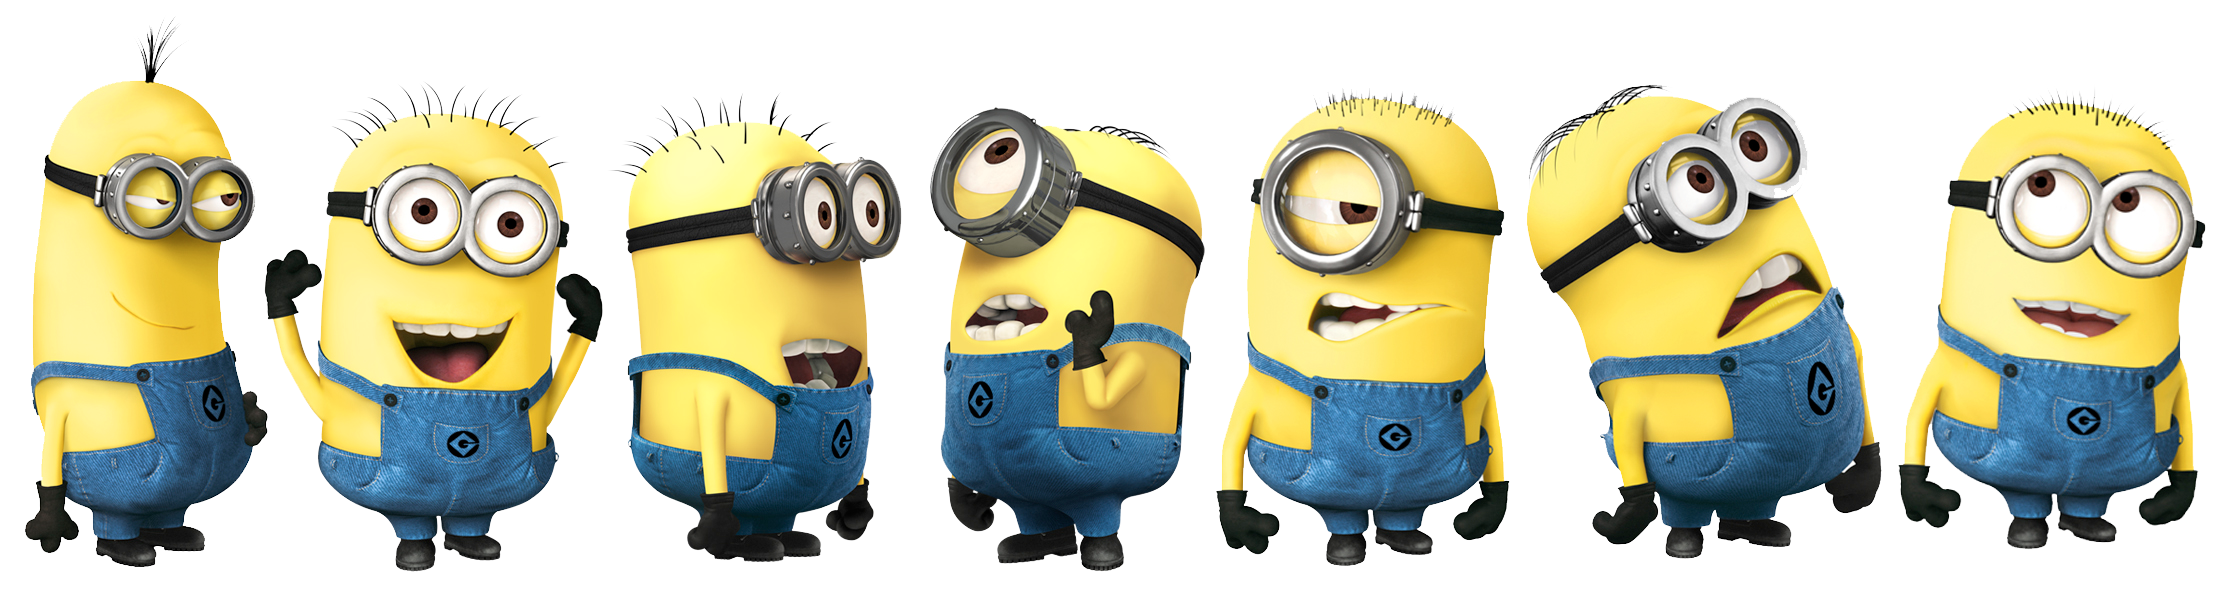 Minion Bob The Minions Stuart Download Free Image PNG Image